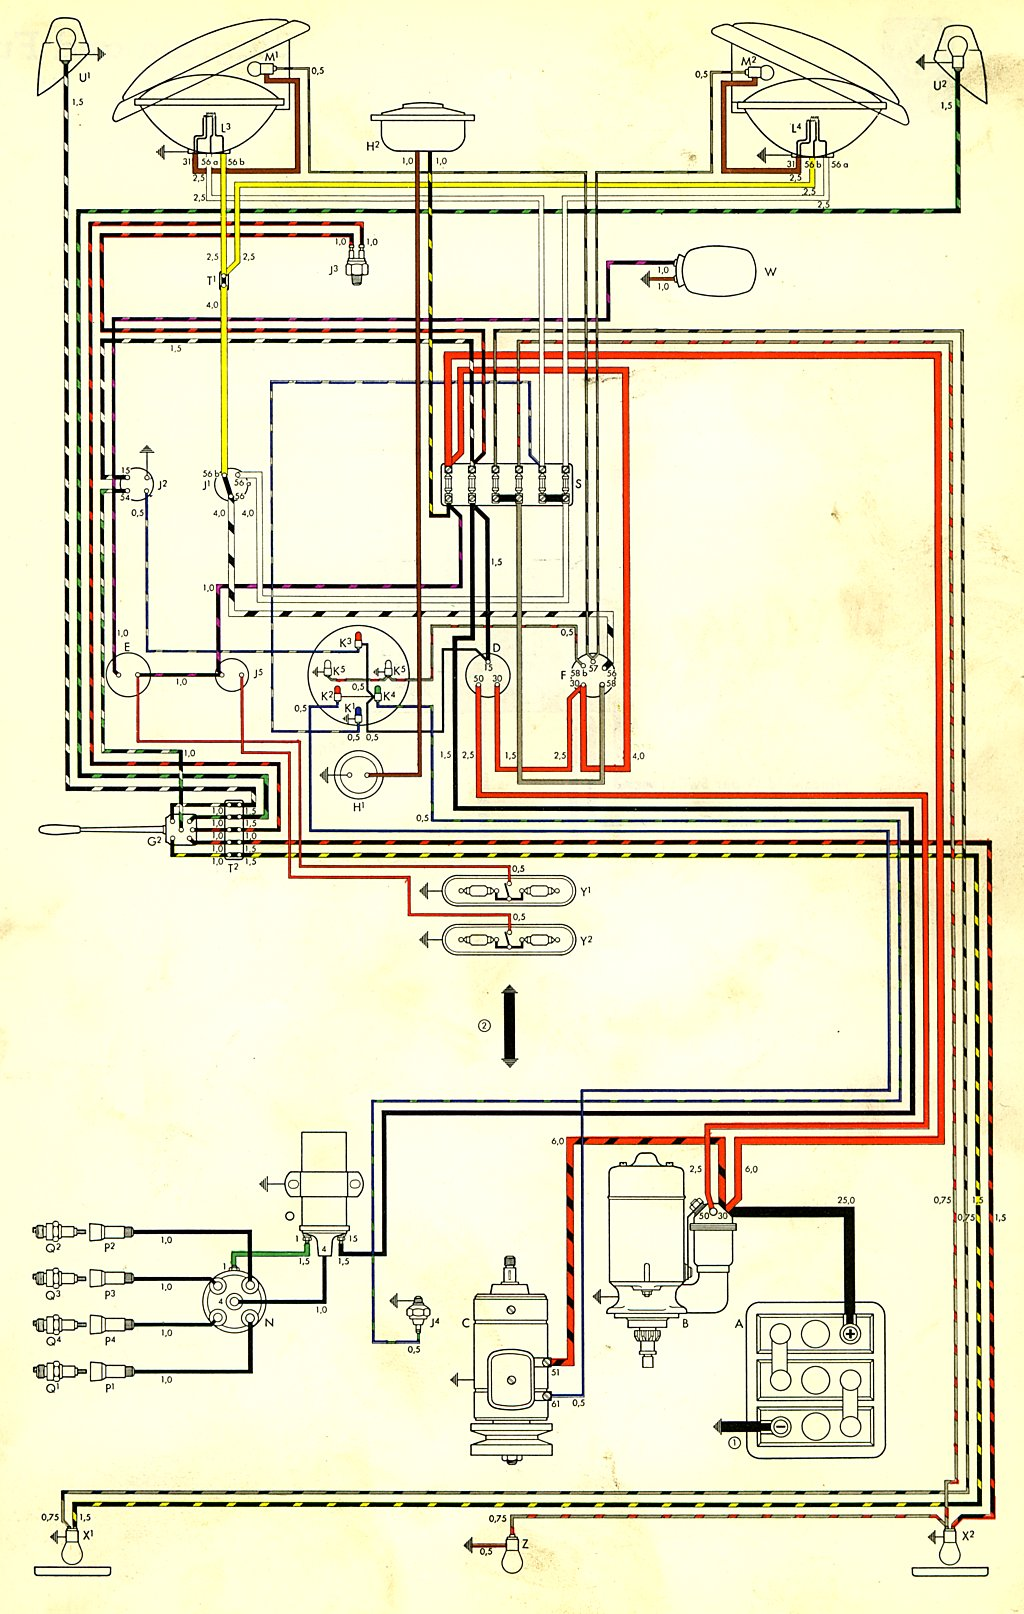 1966 vw bus wiring diagram wiring diagram thesamba com type 2 wiring diagrams rh thesamba com 1966 vw bus wiring diagram 1966 vw publicscrutiny Gallery